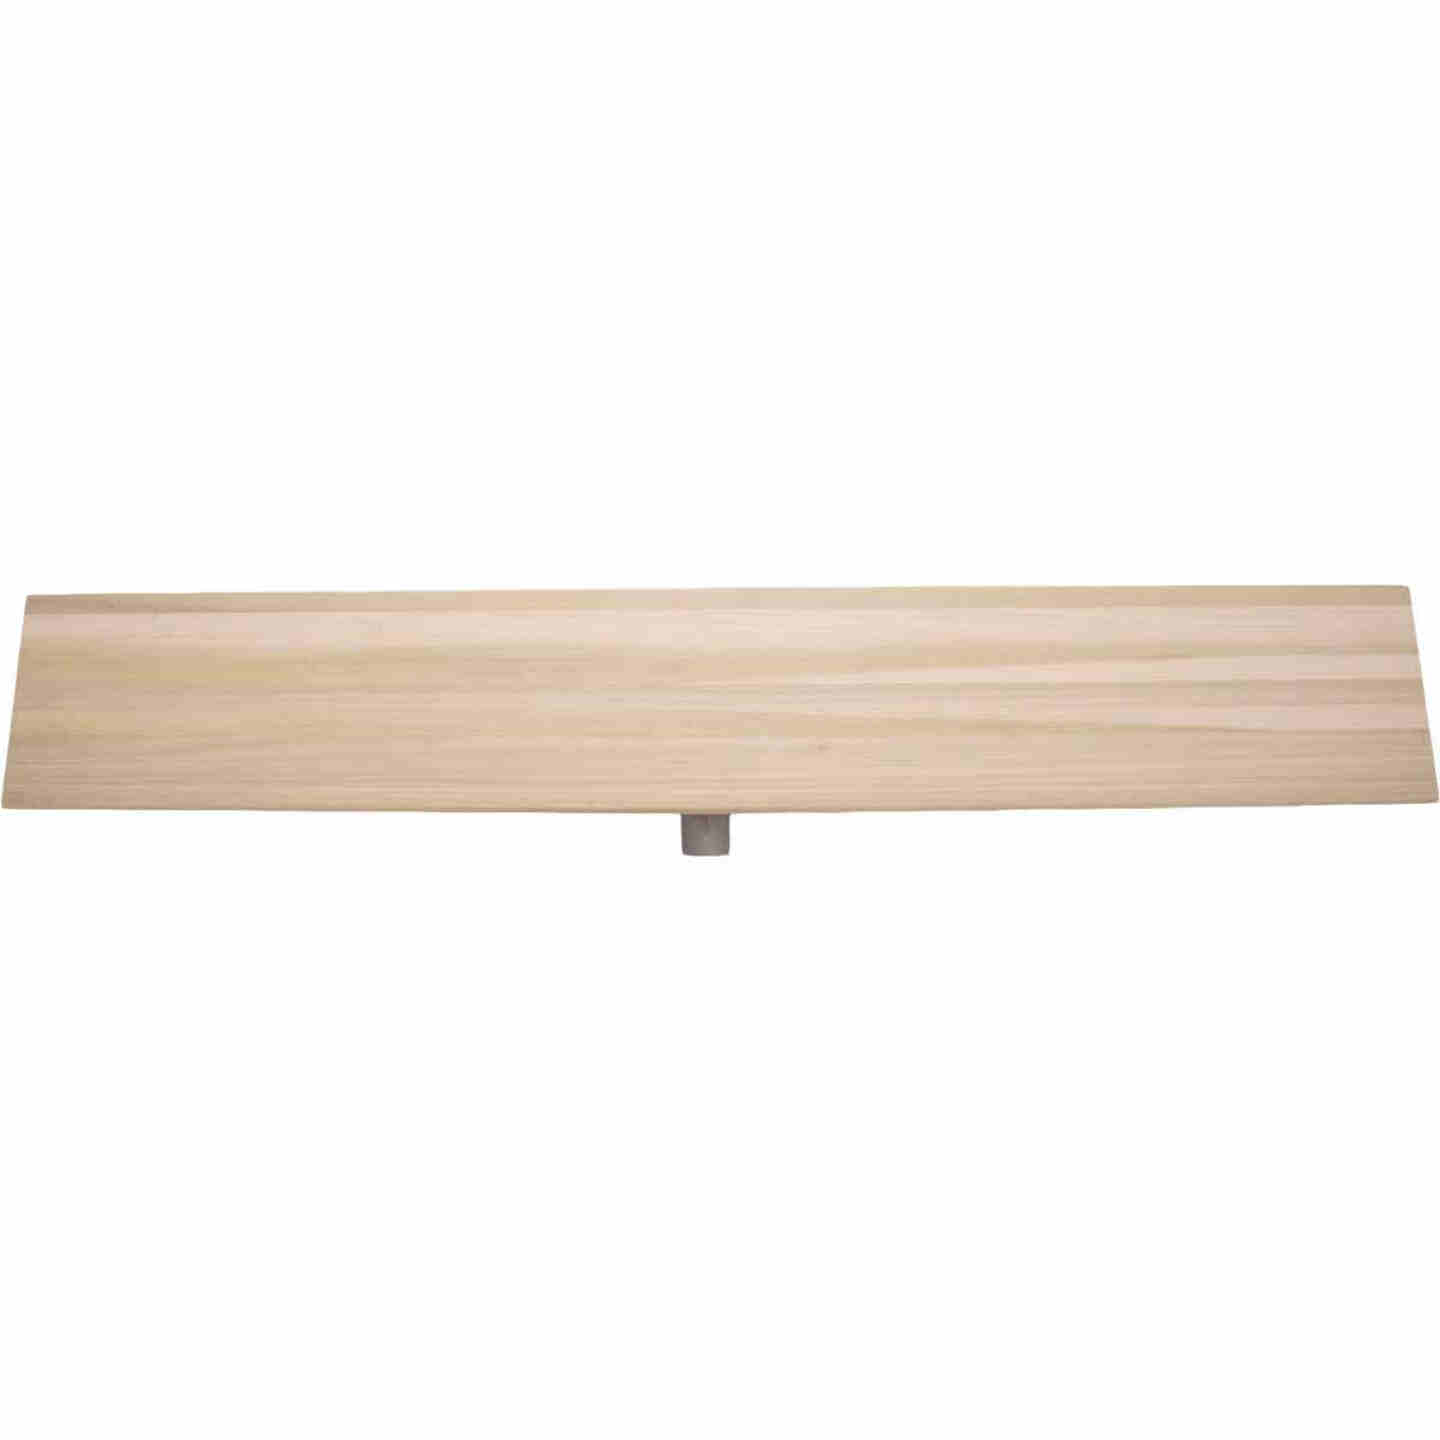 Marshalltown 8 In. x 48 In. Straight End Wood Bull Float Image 4